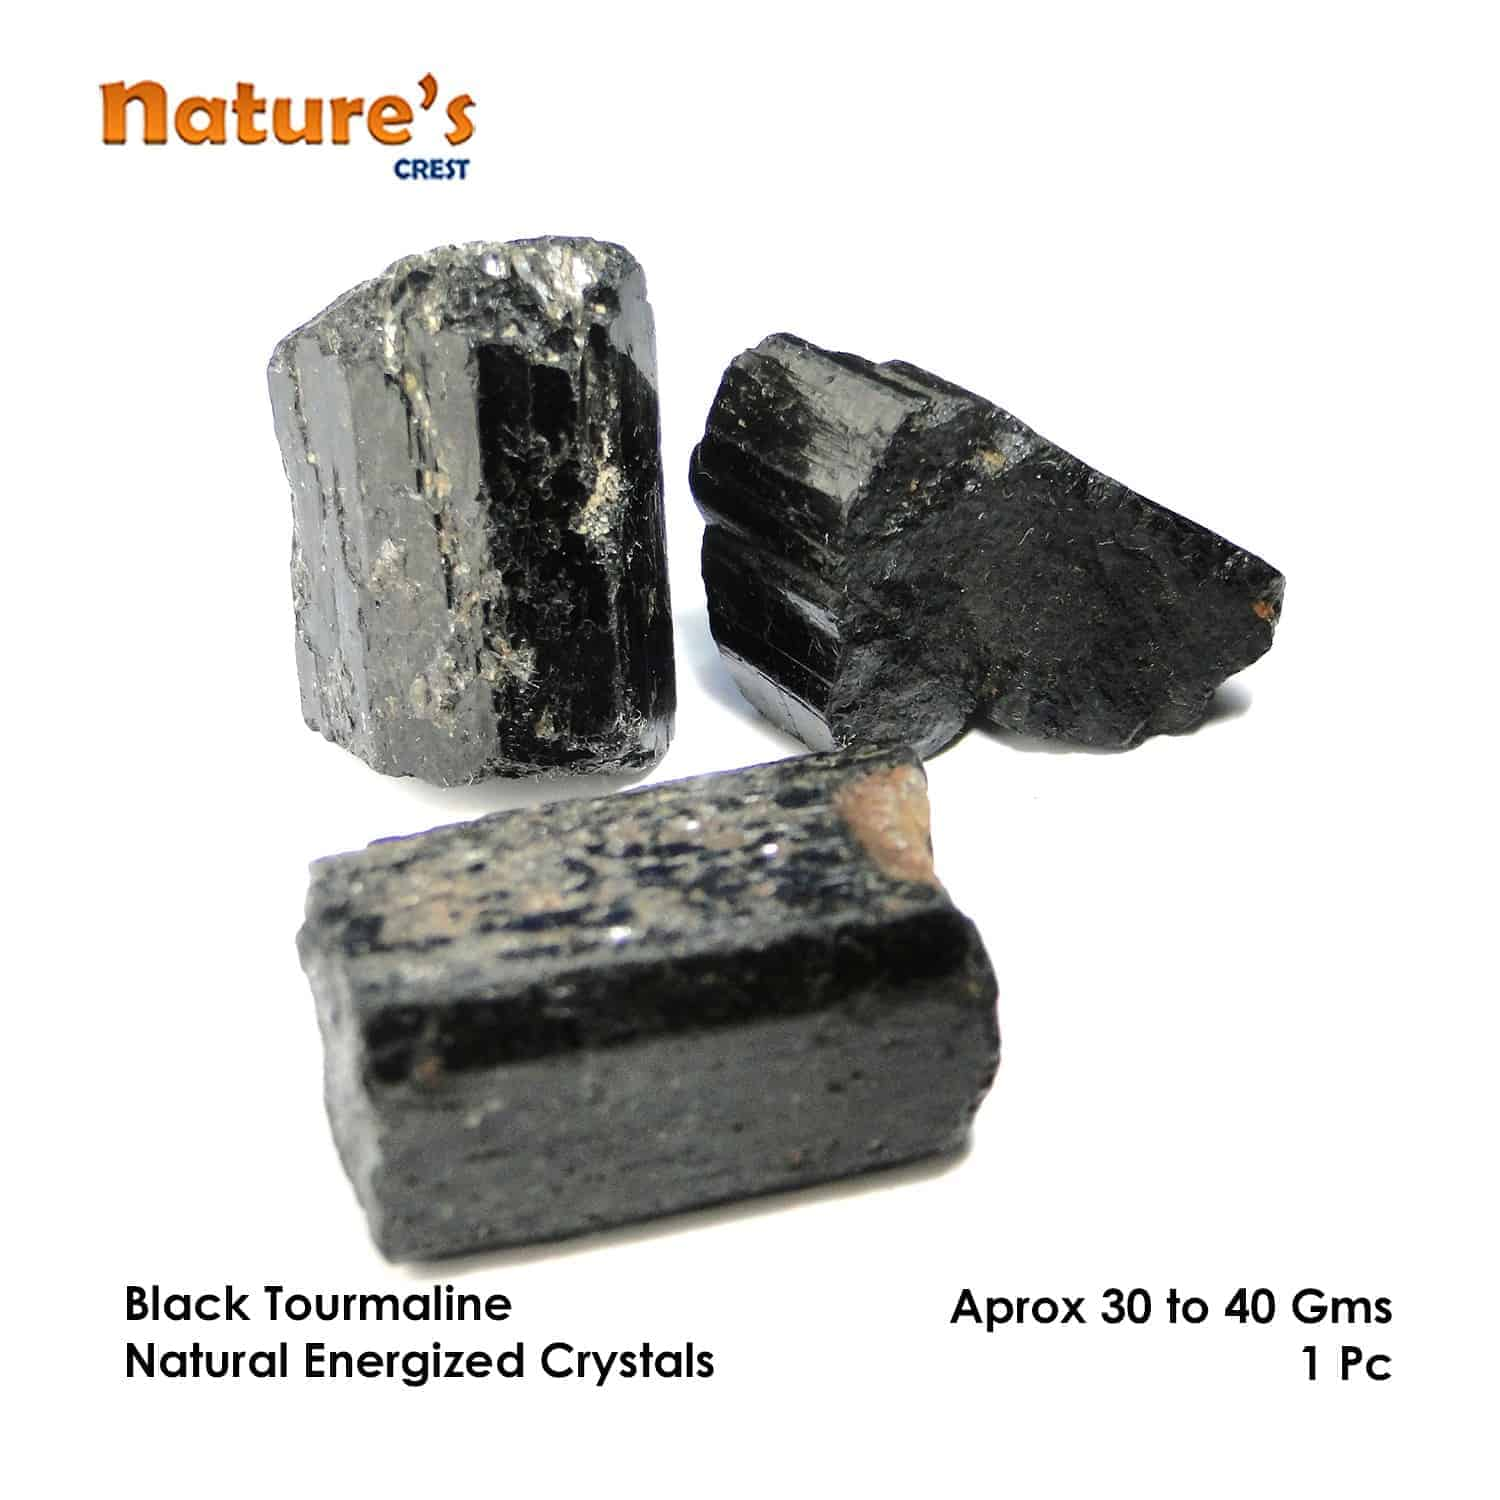 Black Tourmaline Natural Raw Rough Crystal Nature's Crest RC000 ₹249.00